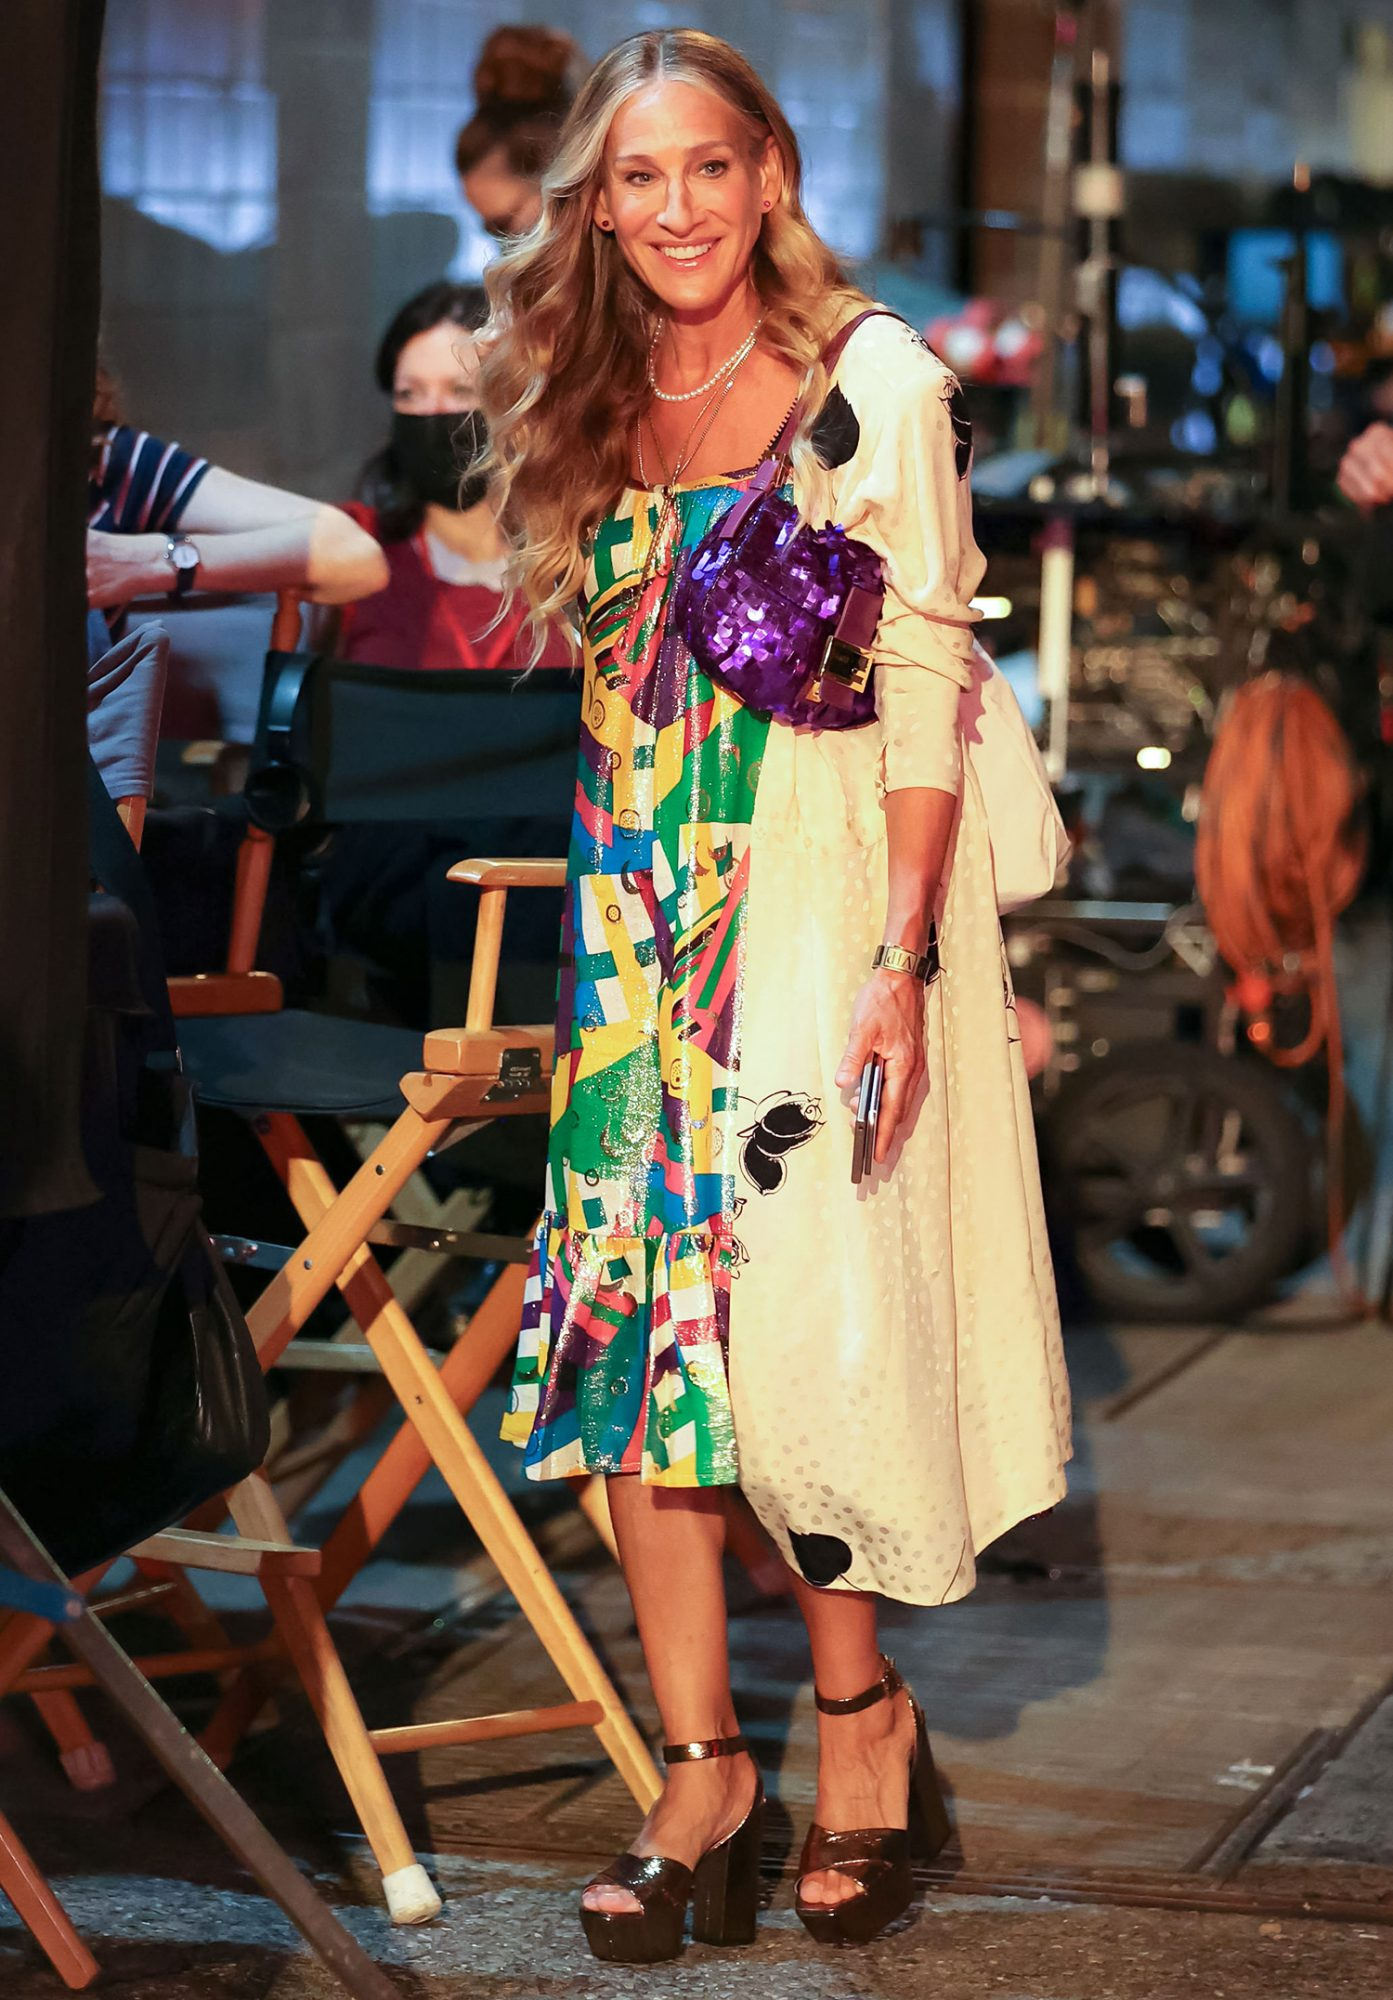 NEW YORK, NY - JULY 16: Sarah Jessica Parker is seen at the film set of the 'And Just Like That' TV Series on July 16, 2021 in New York City.